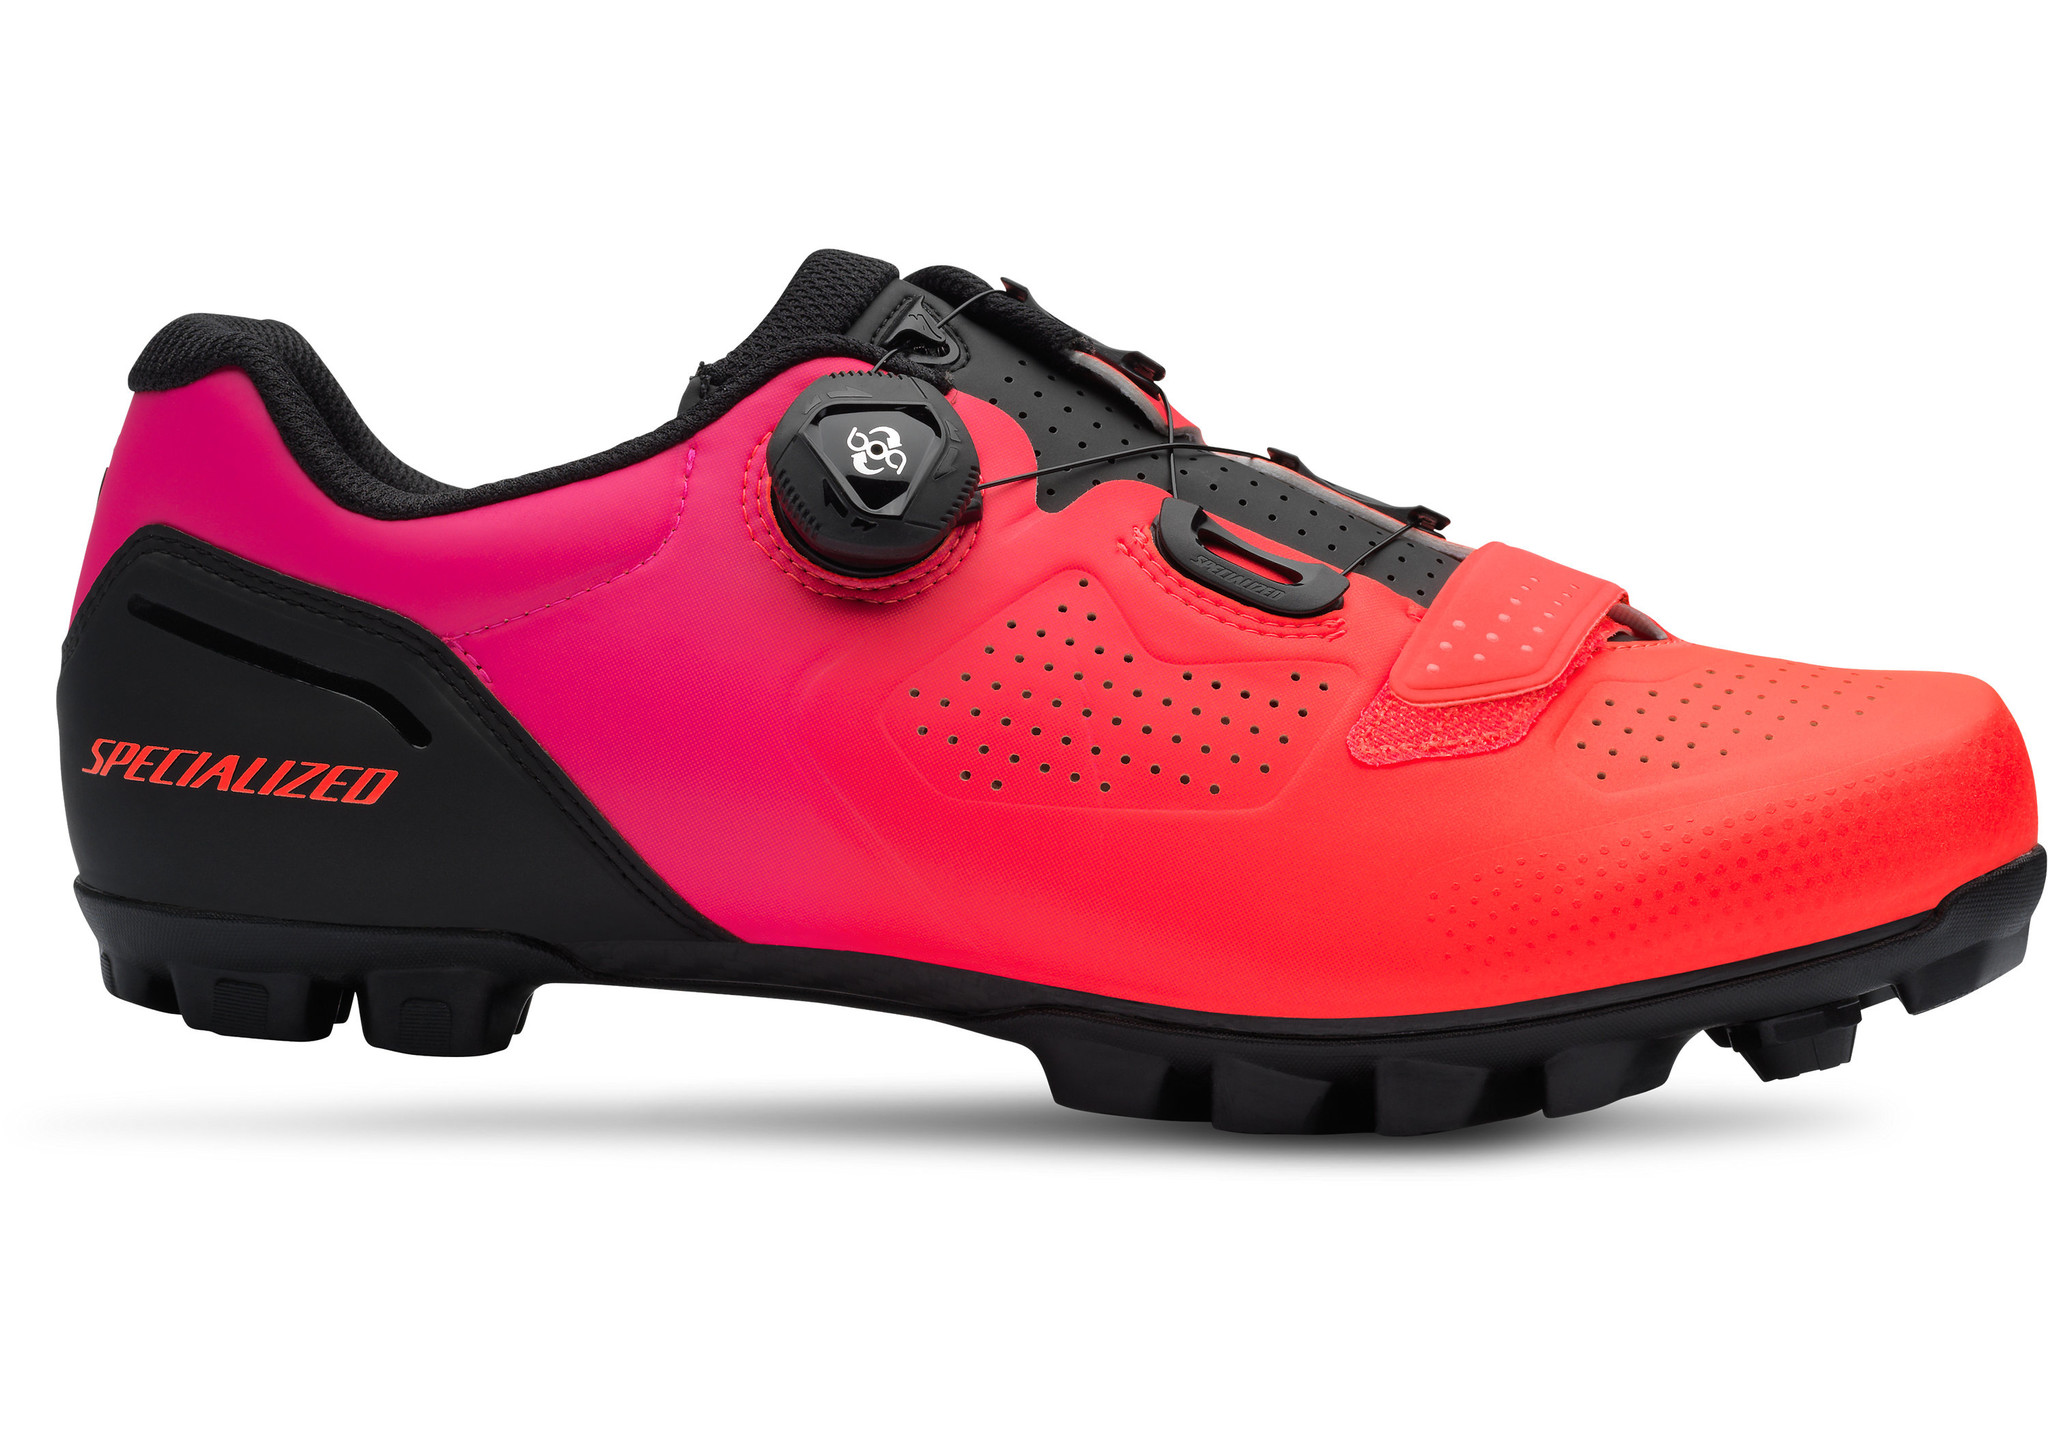 Specialized Specialized Expert XC Mountain Shoes